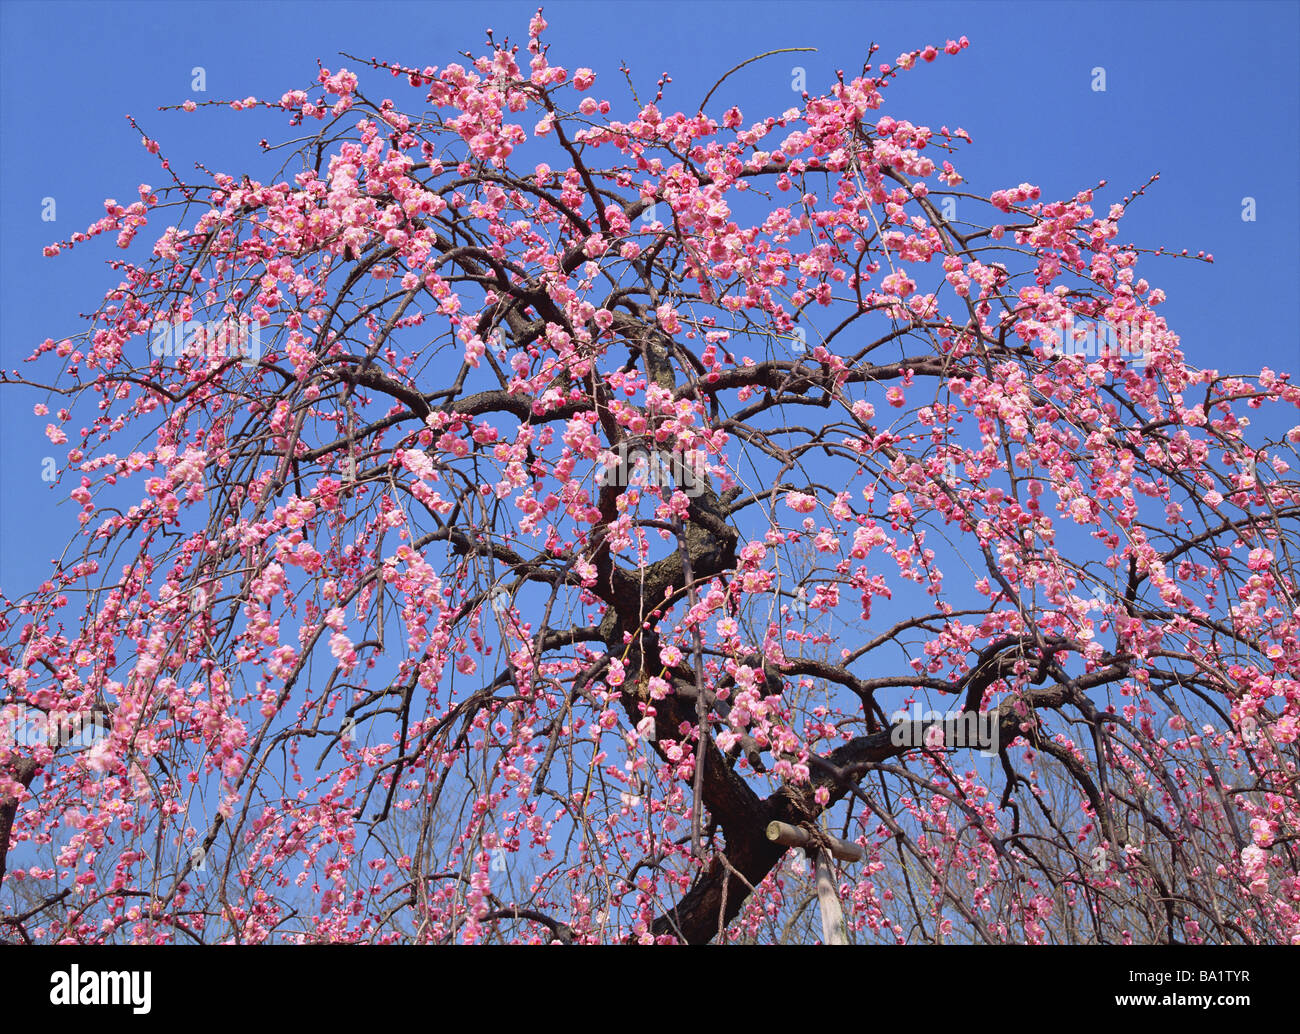 Cherry Plum Trees Blooming in Springtime Banque D'Images